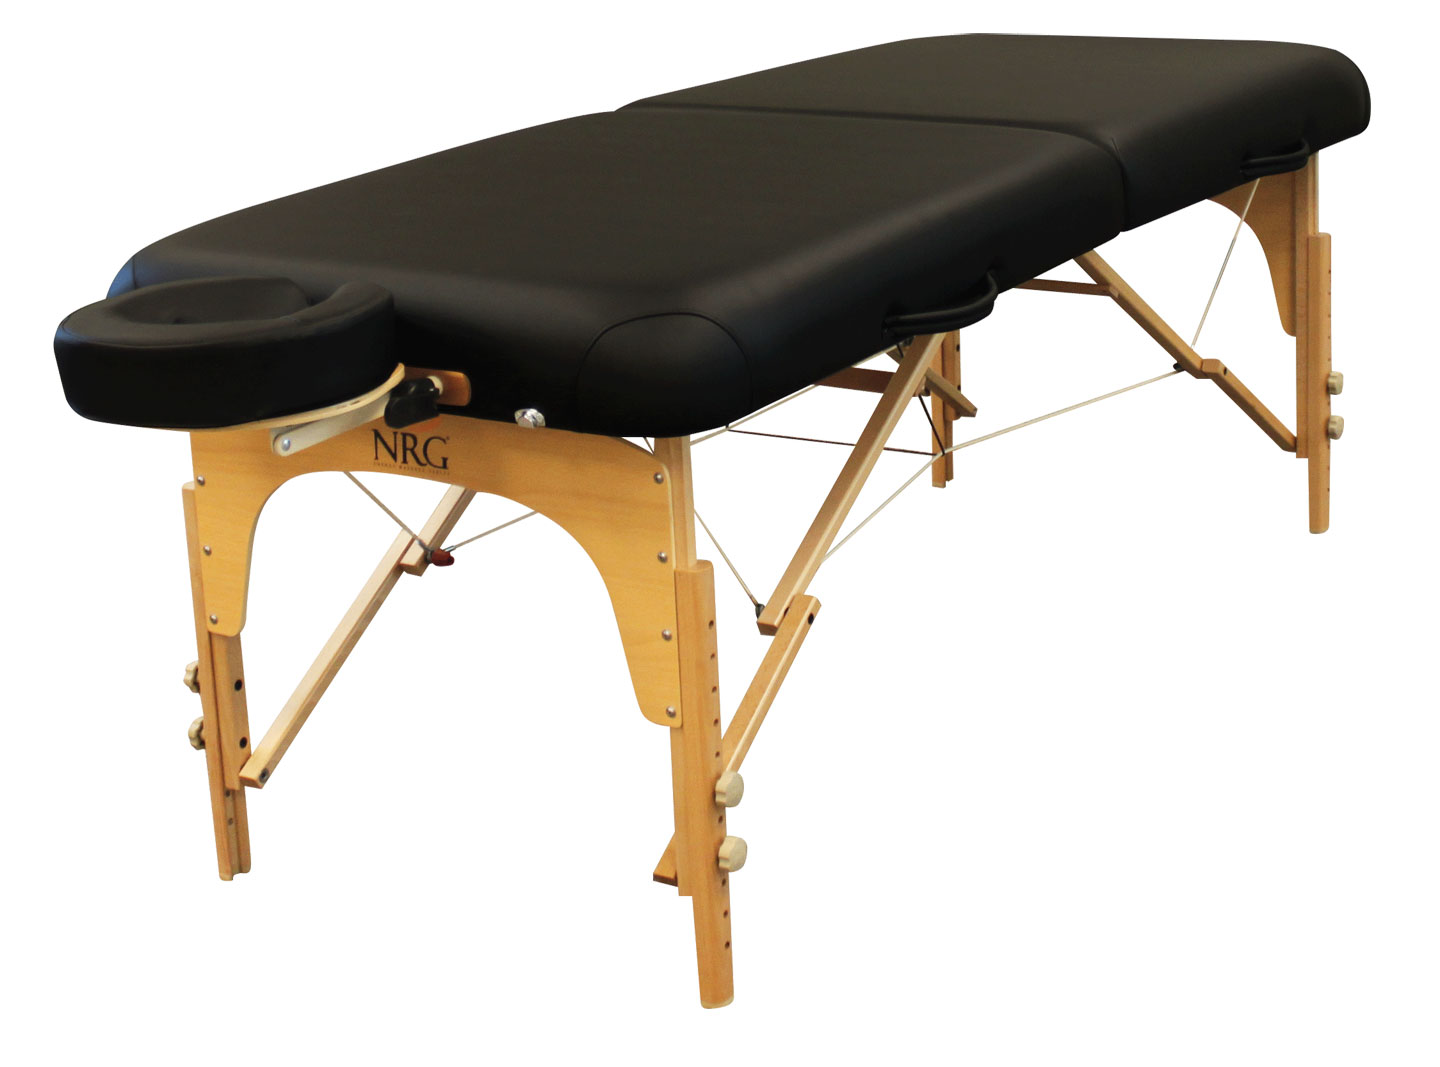 Nrg vedalux massage table package portable massage table for Massage table